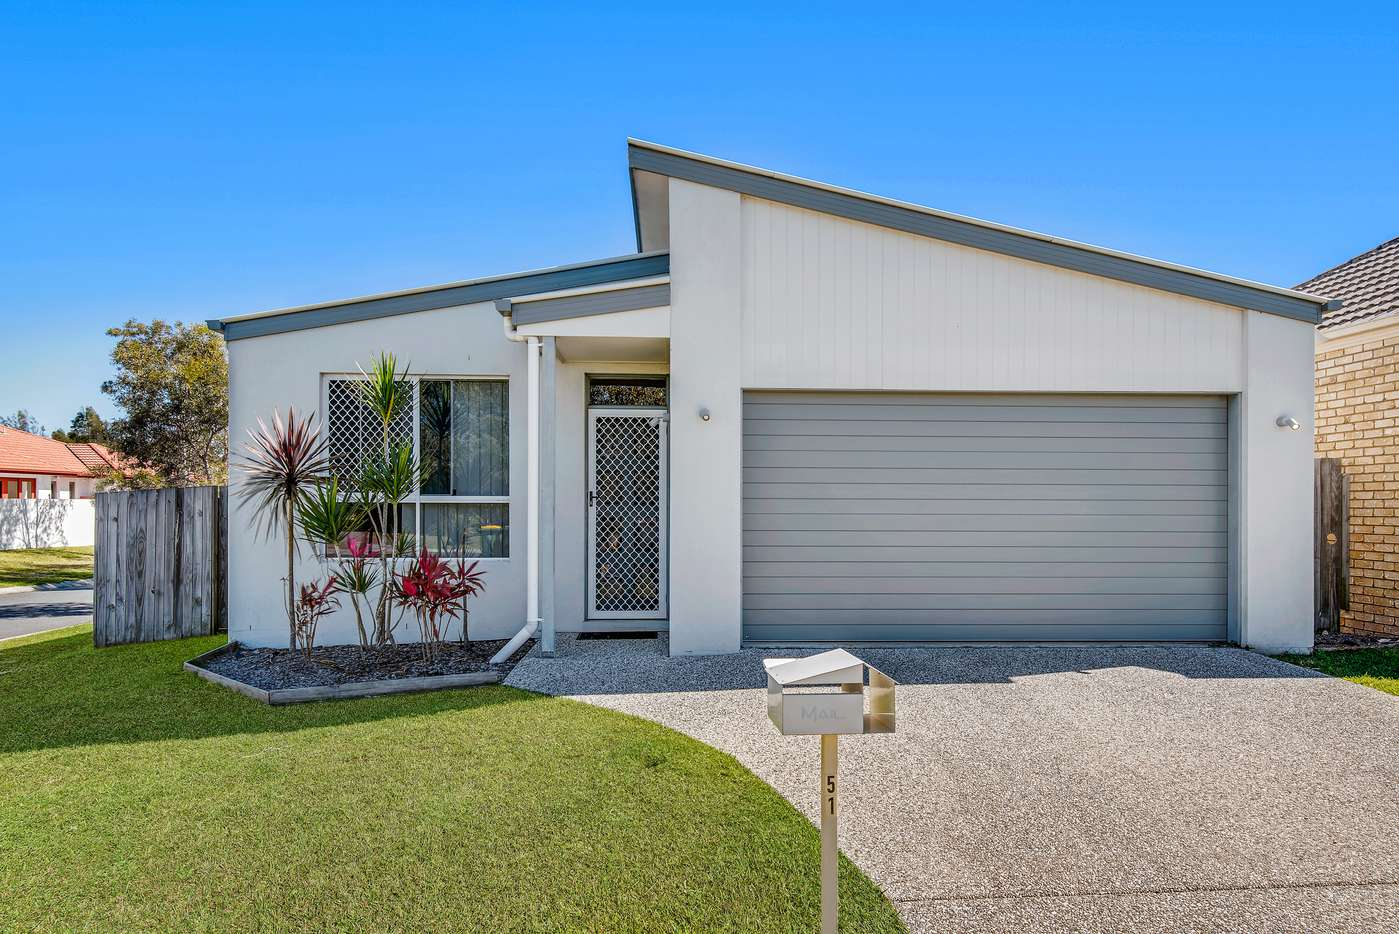 Main view of Homely house listing, 51 Crater Street, Caloundra West, QLD 4551